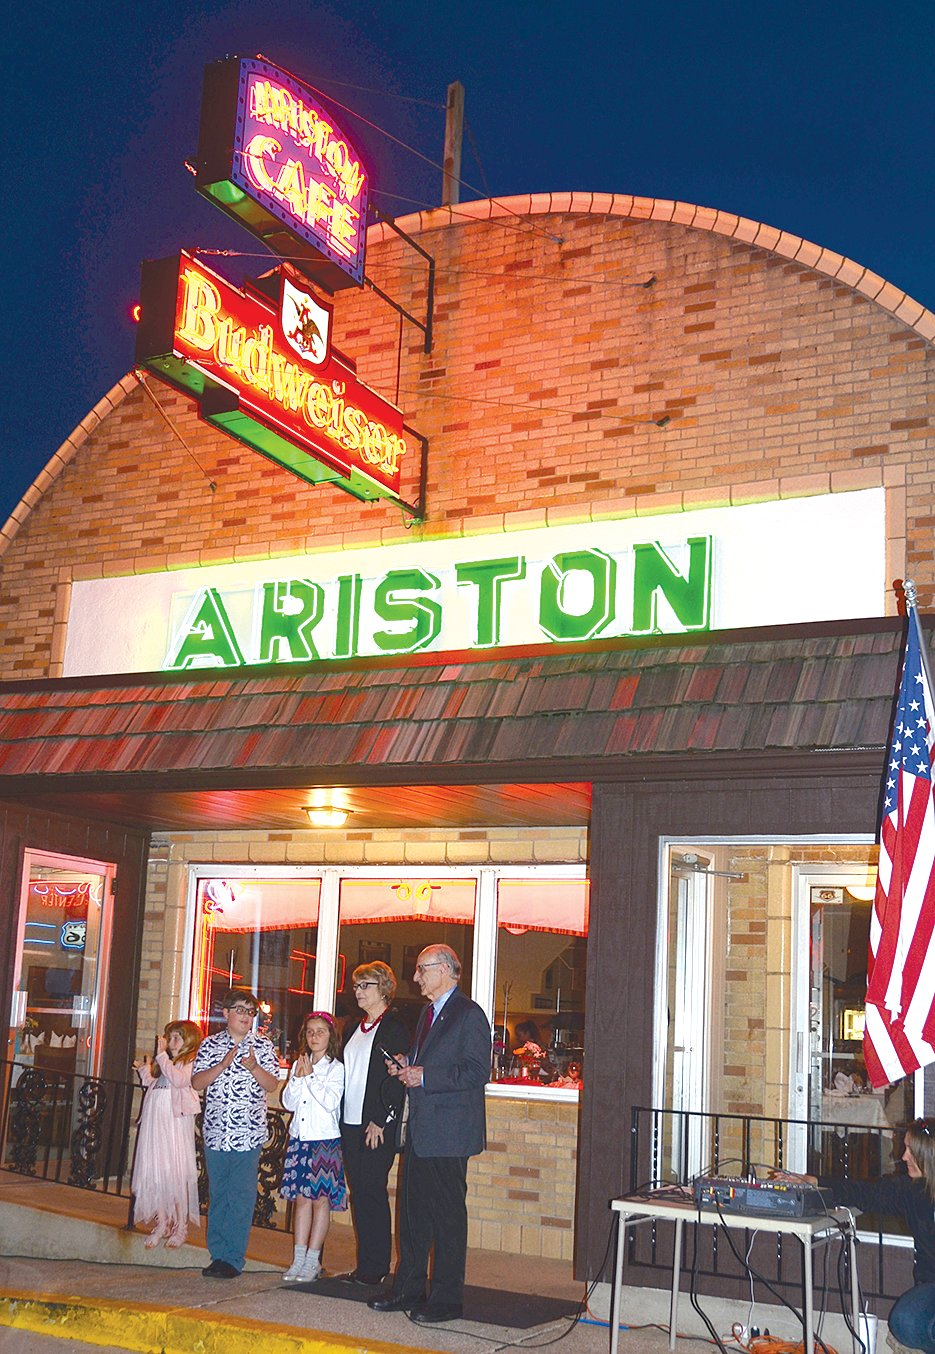 Nick and Demi Adam, longtime former owners of the Ariston Cafe, celebrated the special relighting with members of their family. They are pictured above with their grandchildren, Maria Adam, Nicholas Adam and Leah Adam.